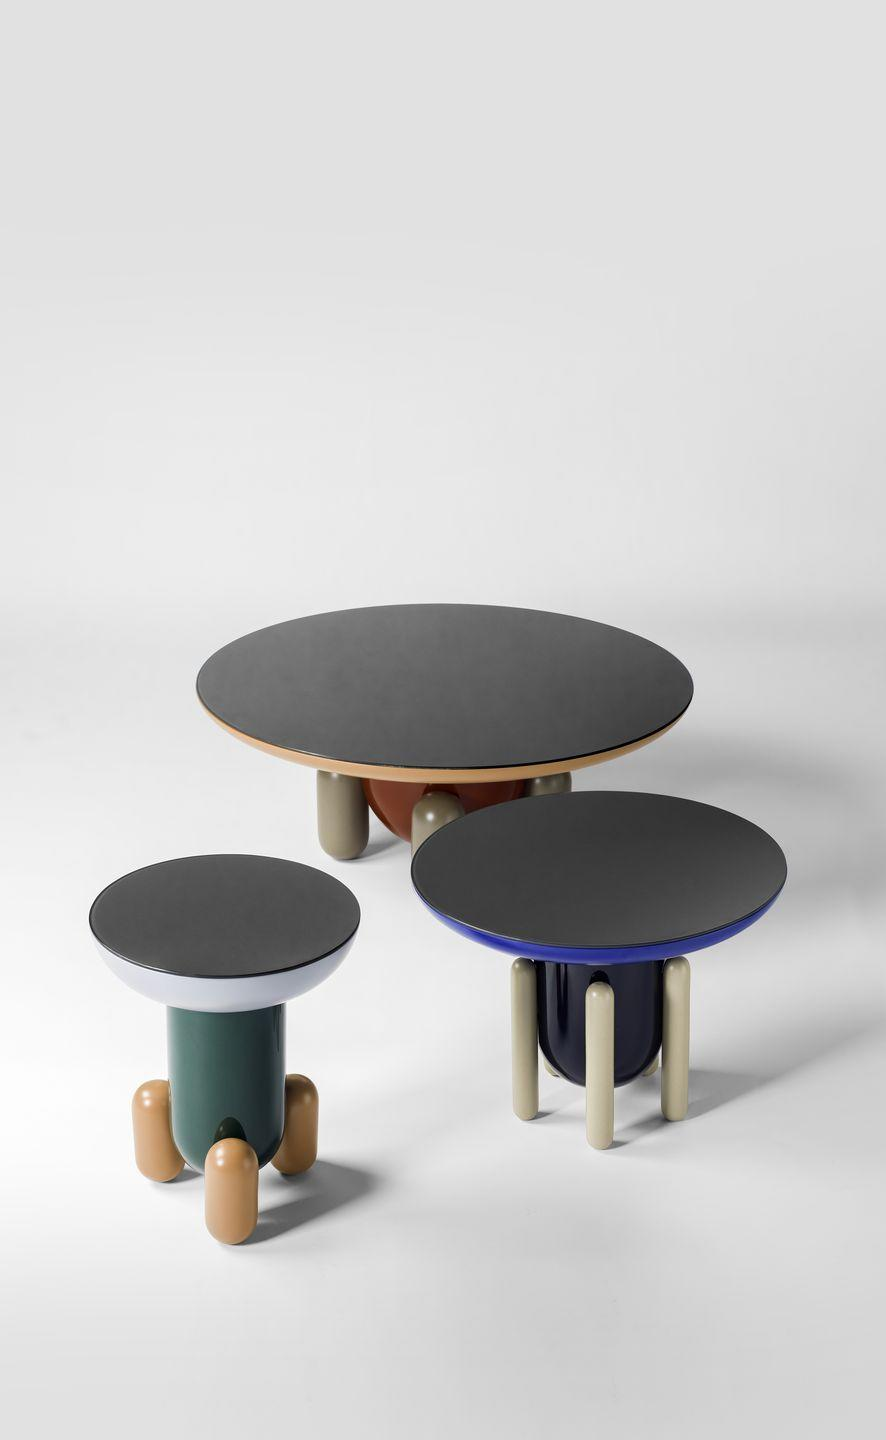 """<p>Jaime Hayon's 'Explorer' side tables for make for a characterful little gang. Typical of the Spanish designer's playful aesthetic, the three variations are inspired by jelly beans and childhood sweets and are available in a tantalising array of colours and finishes. From £1,564, <a href=""""https://www.aram.co.uk"""" rel=""""nofollow noopener"""" target=""""_blank"""" data-ylk=""""slk:aram.co.uk"""" class=""""link rapid-noclick-resp"""">aram.co.uk</a></p>"""